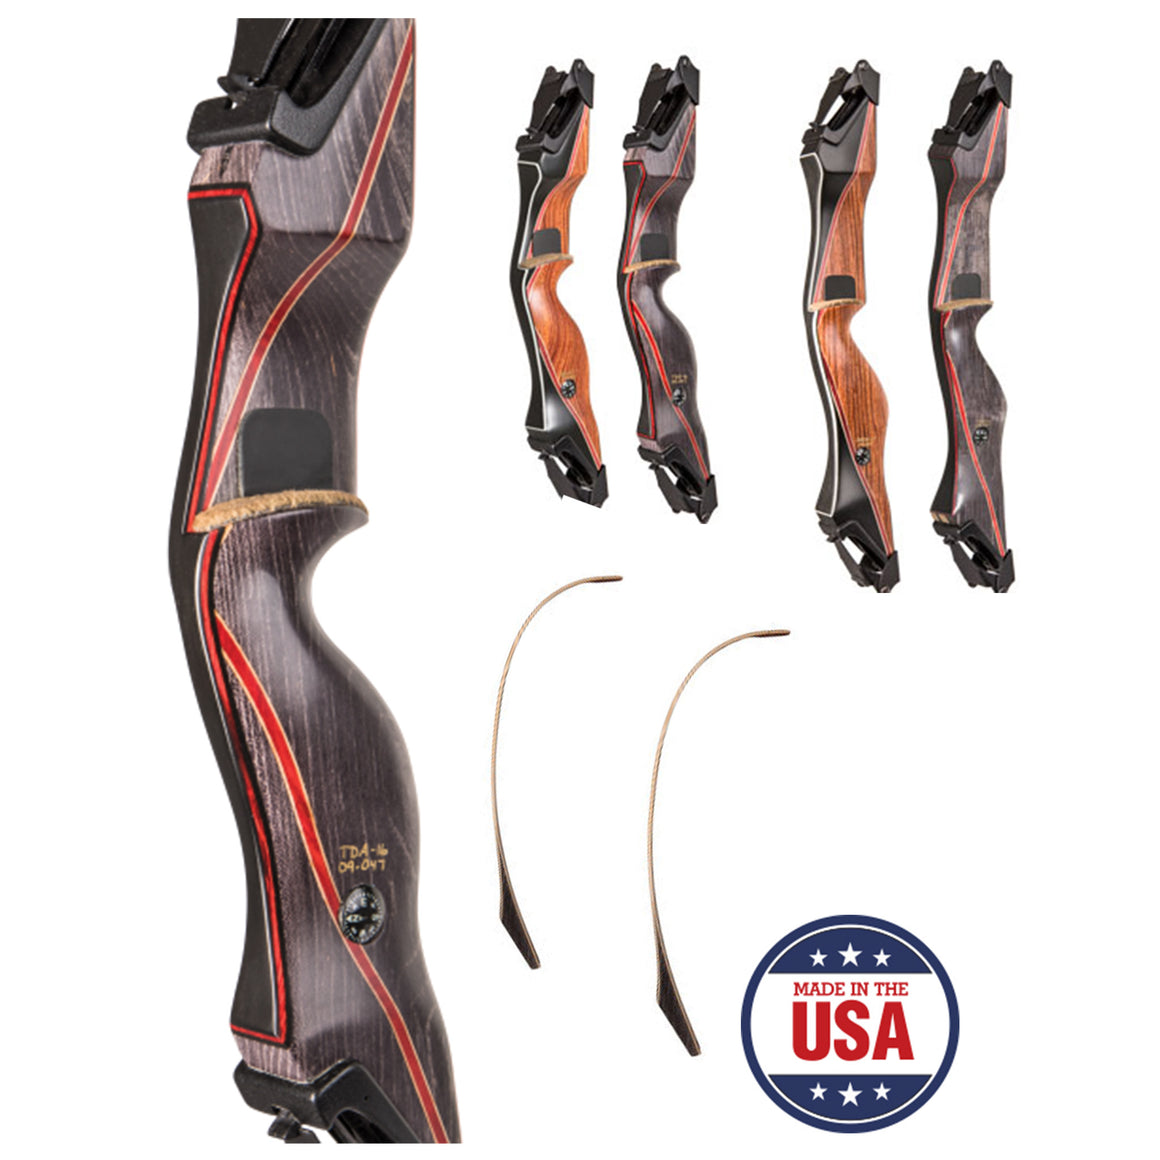 Fred Bear Takedown Recurve Bow